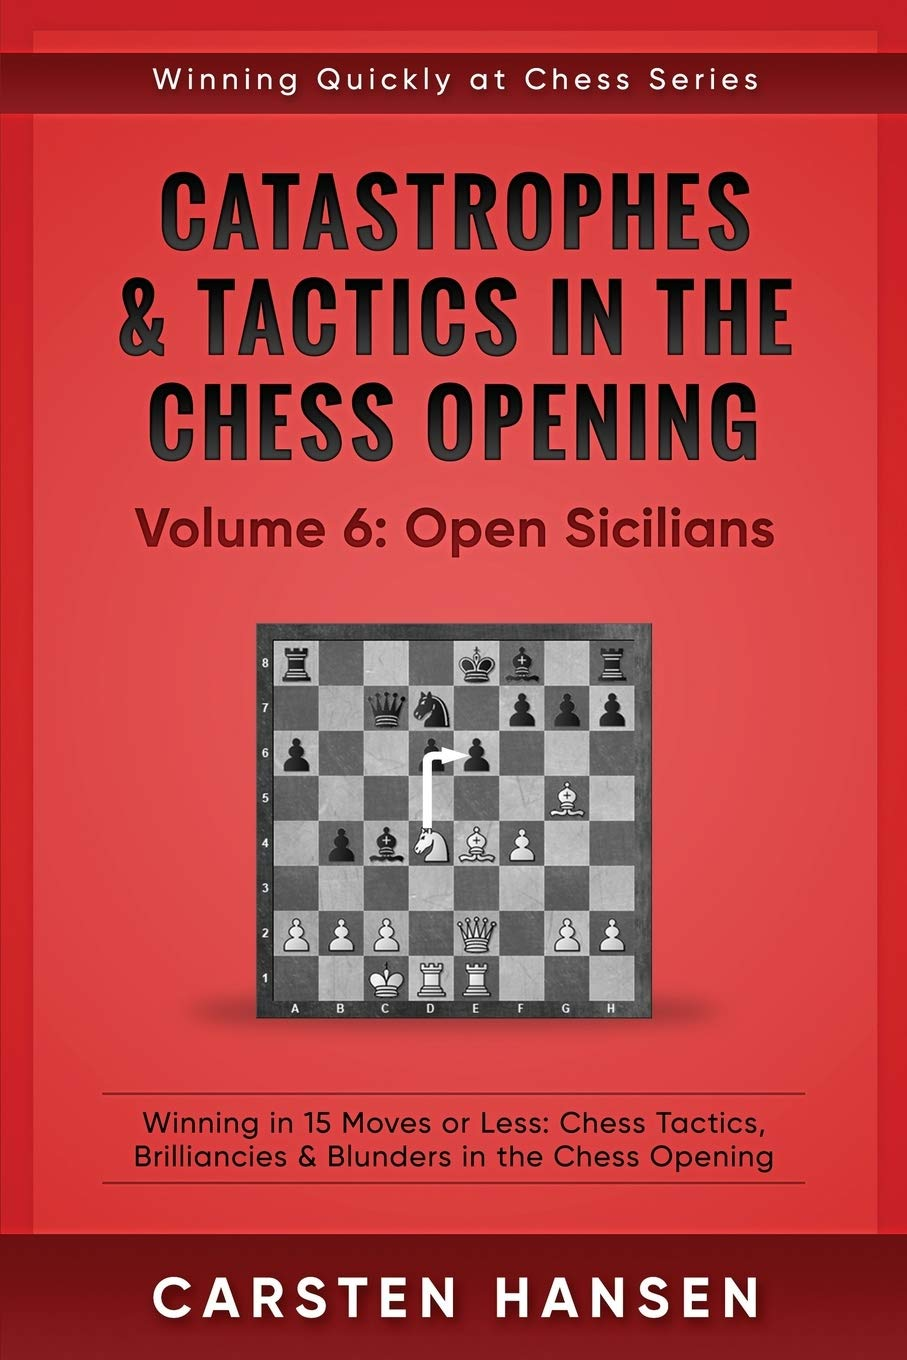 Catastrophes And Tactics In The Chess Opening   Volume 6  Open Sicilians  Winning In 15 Moves Or Less  Chess Tactics Brilliancies And Blunders In The Chess Opening  Winning Quickly At Chess Band 6